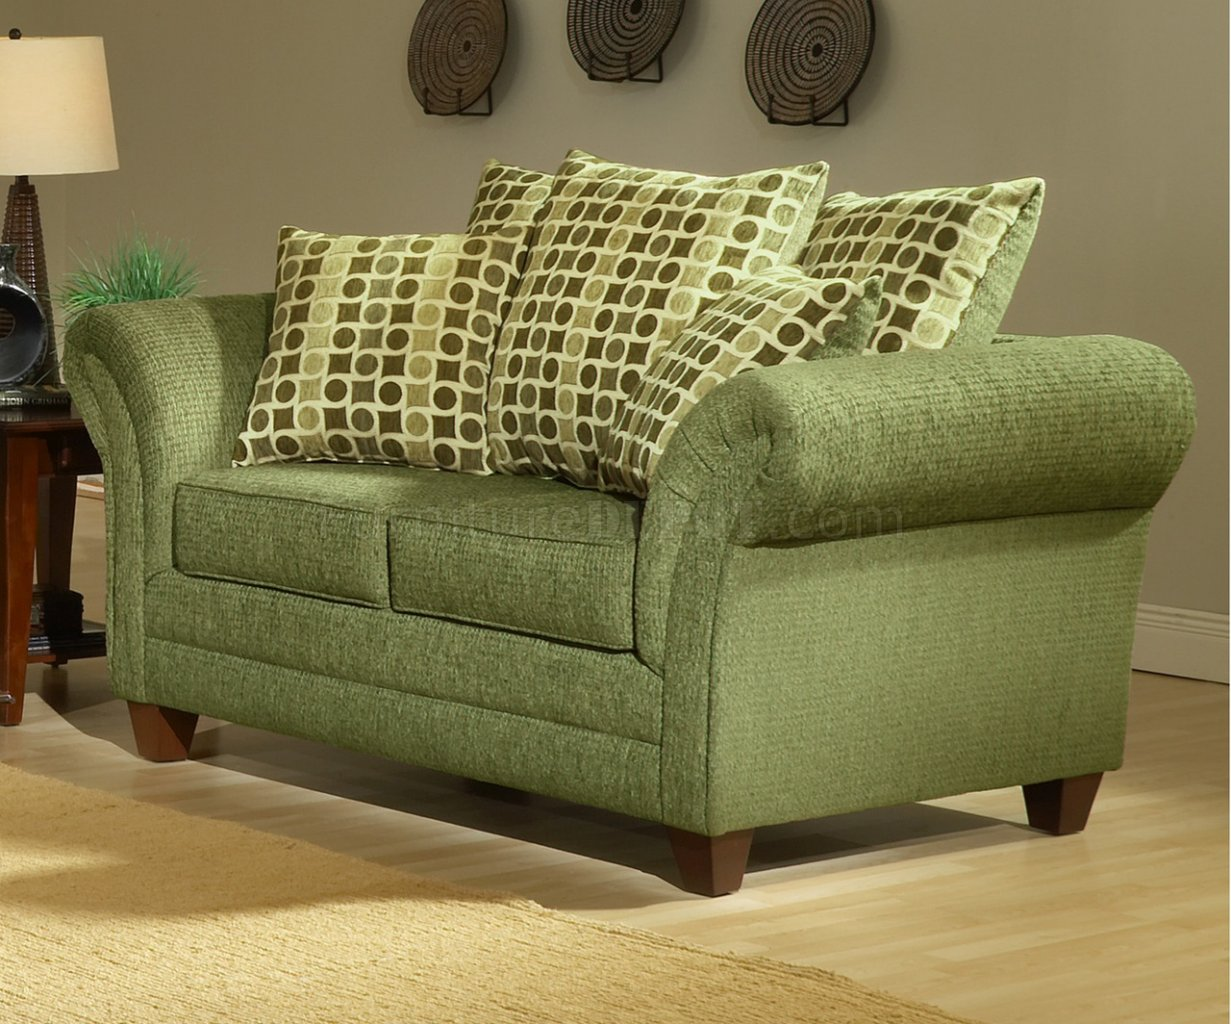 39 Living Room Ideas With Light Brown Sofas Green Blue: Light Forest Green Fabric Modern Living Room Sofa